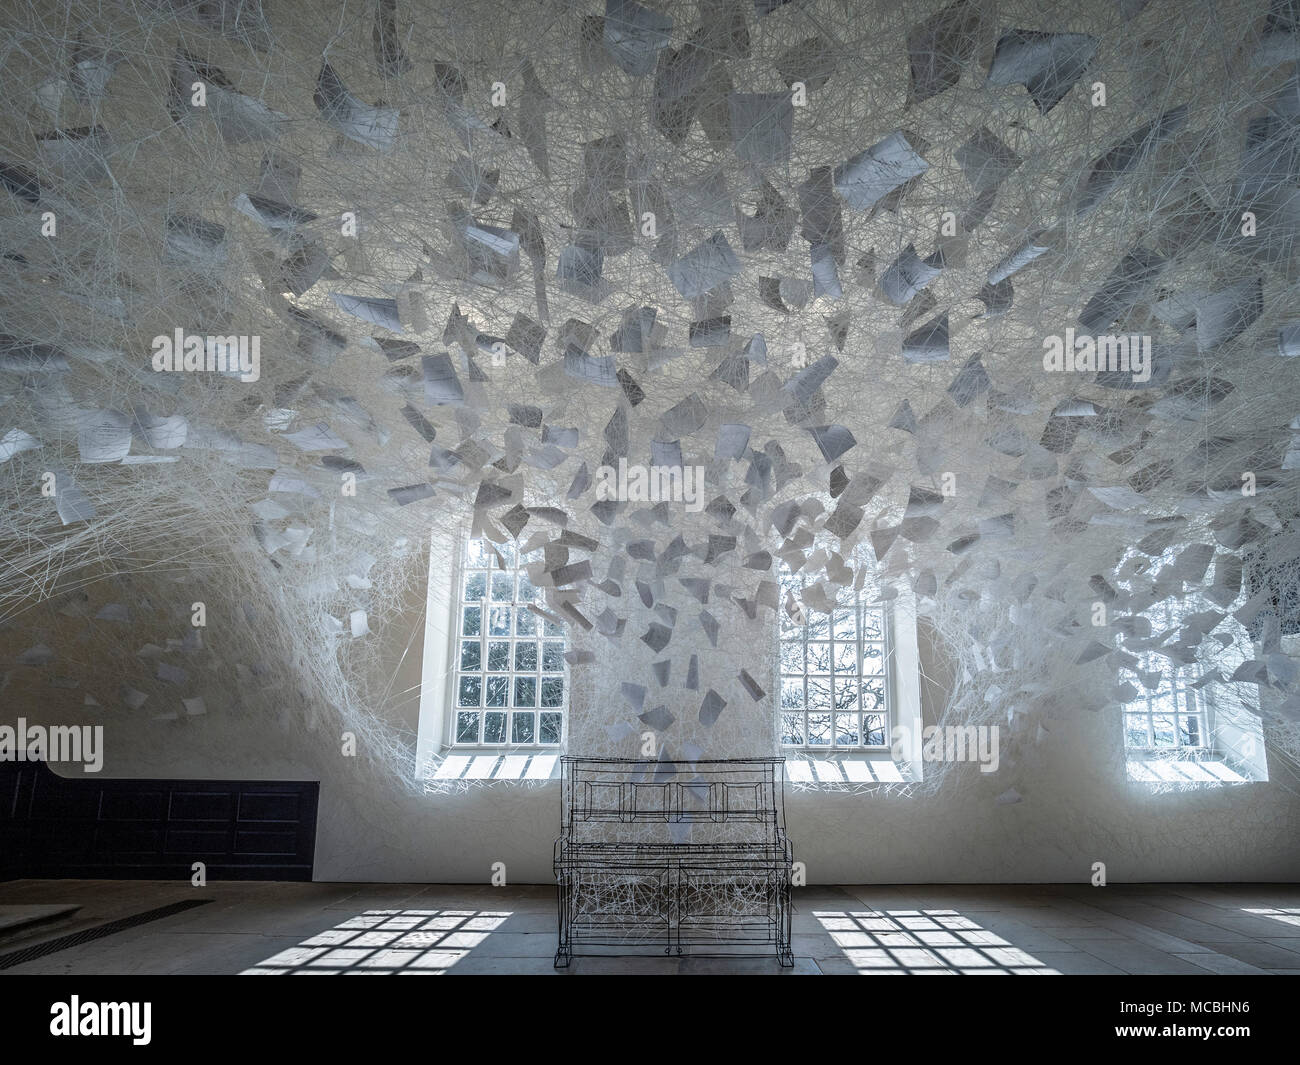 'Beyond Time' art installation by Chiharu Shiota, at the Chapel, Yorkshire Sculpture Park, UK. - Stock Image